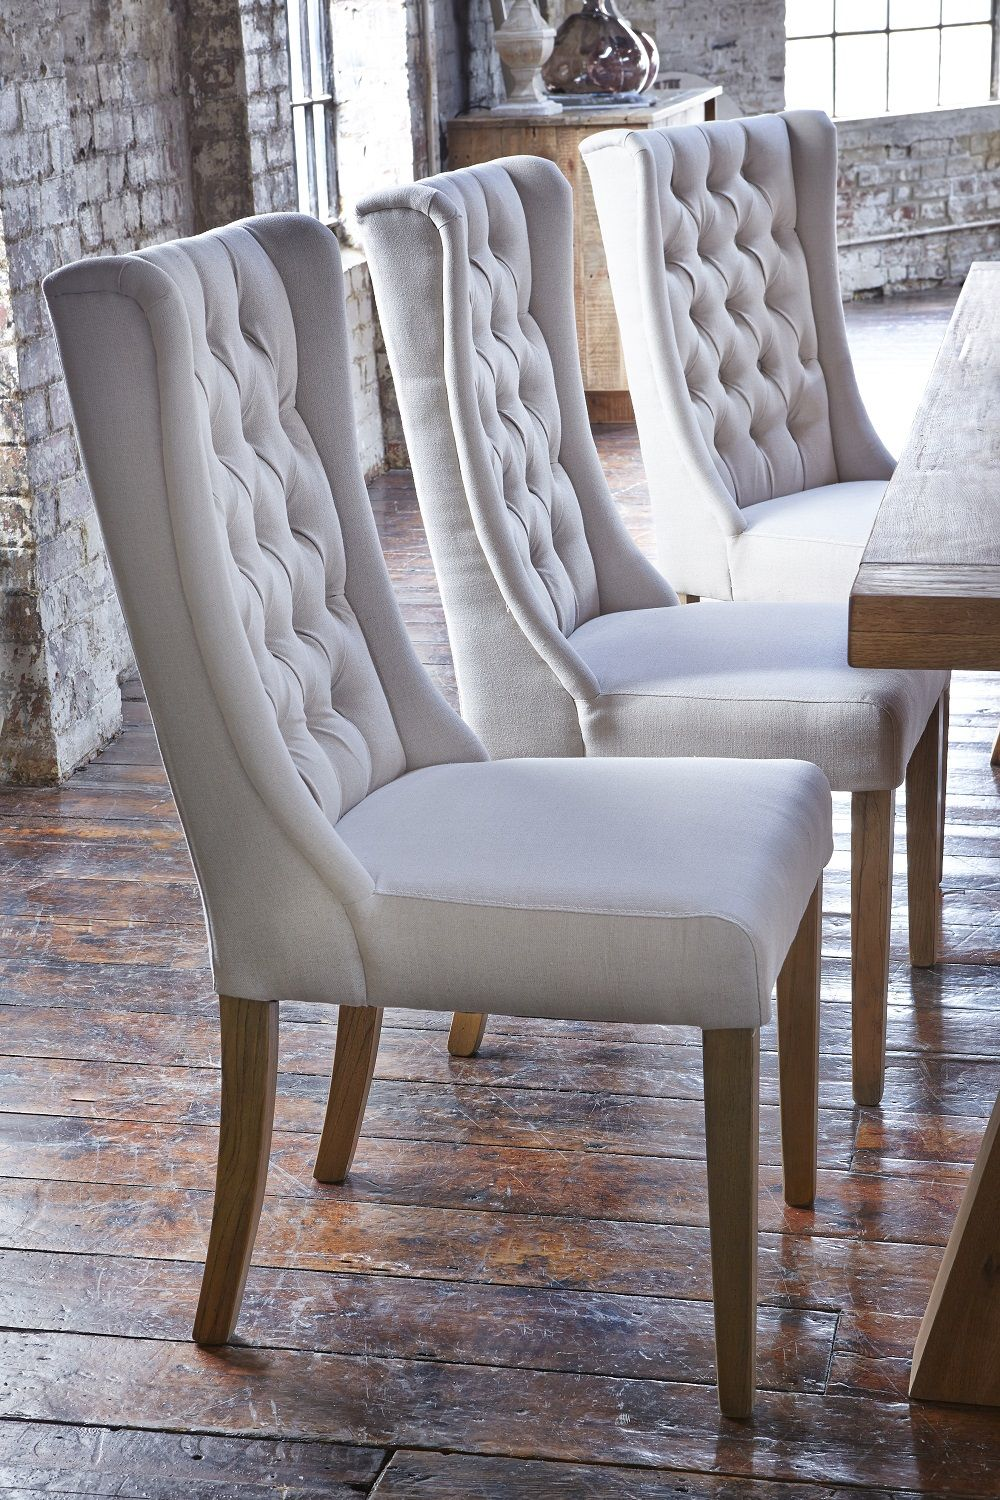 Upholstered Winged Chairs Will Give Your Dining Room An Air Of Elegance We Love The Kipling Chair With Its Chic Curved Legs